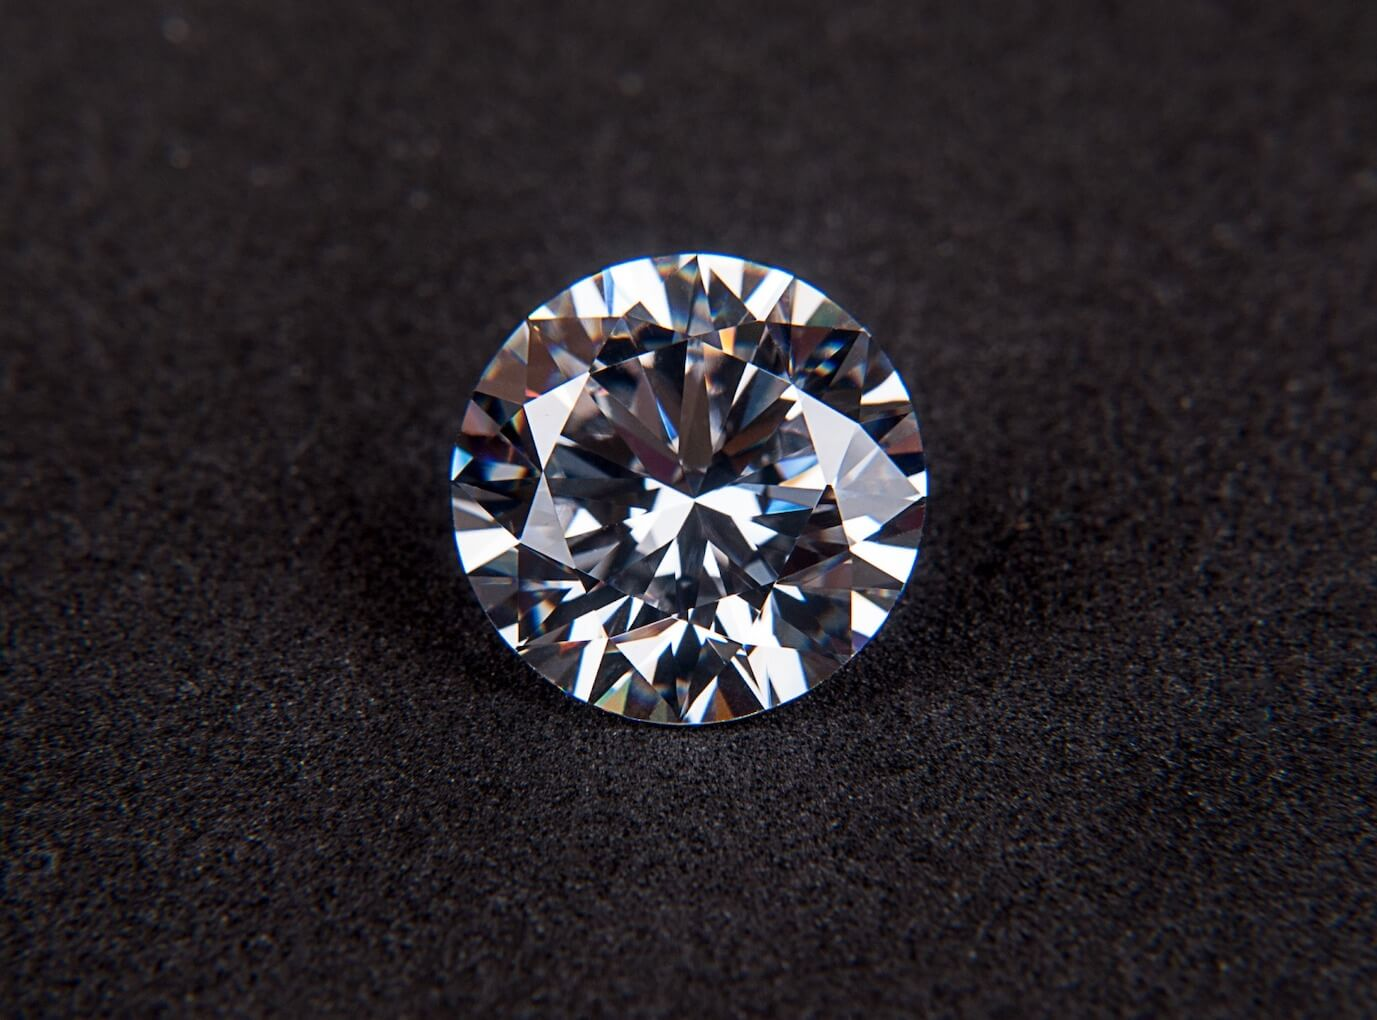 HISTORIC MOMENT FOR CVD DIAMONDS ACROSS THE WORLD: A PAGE IN HISTORY